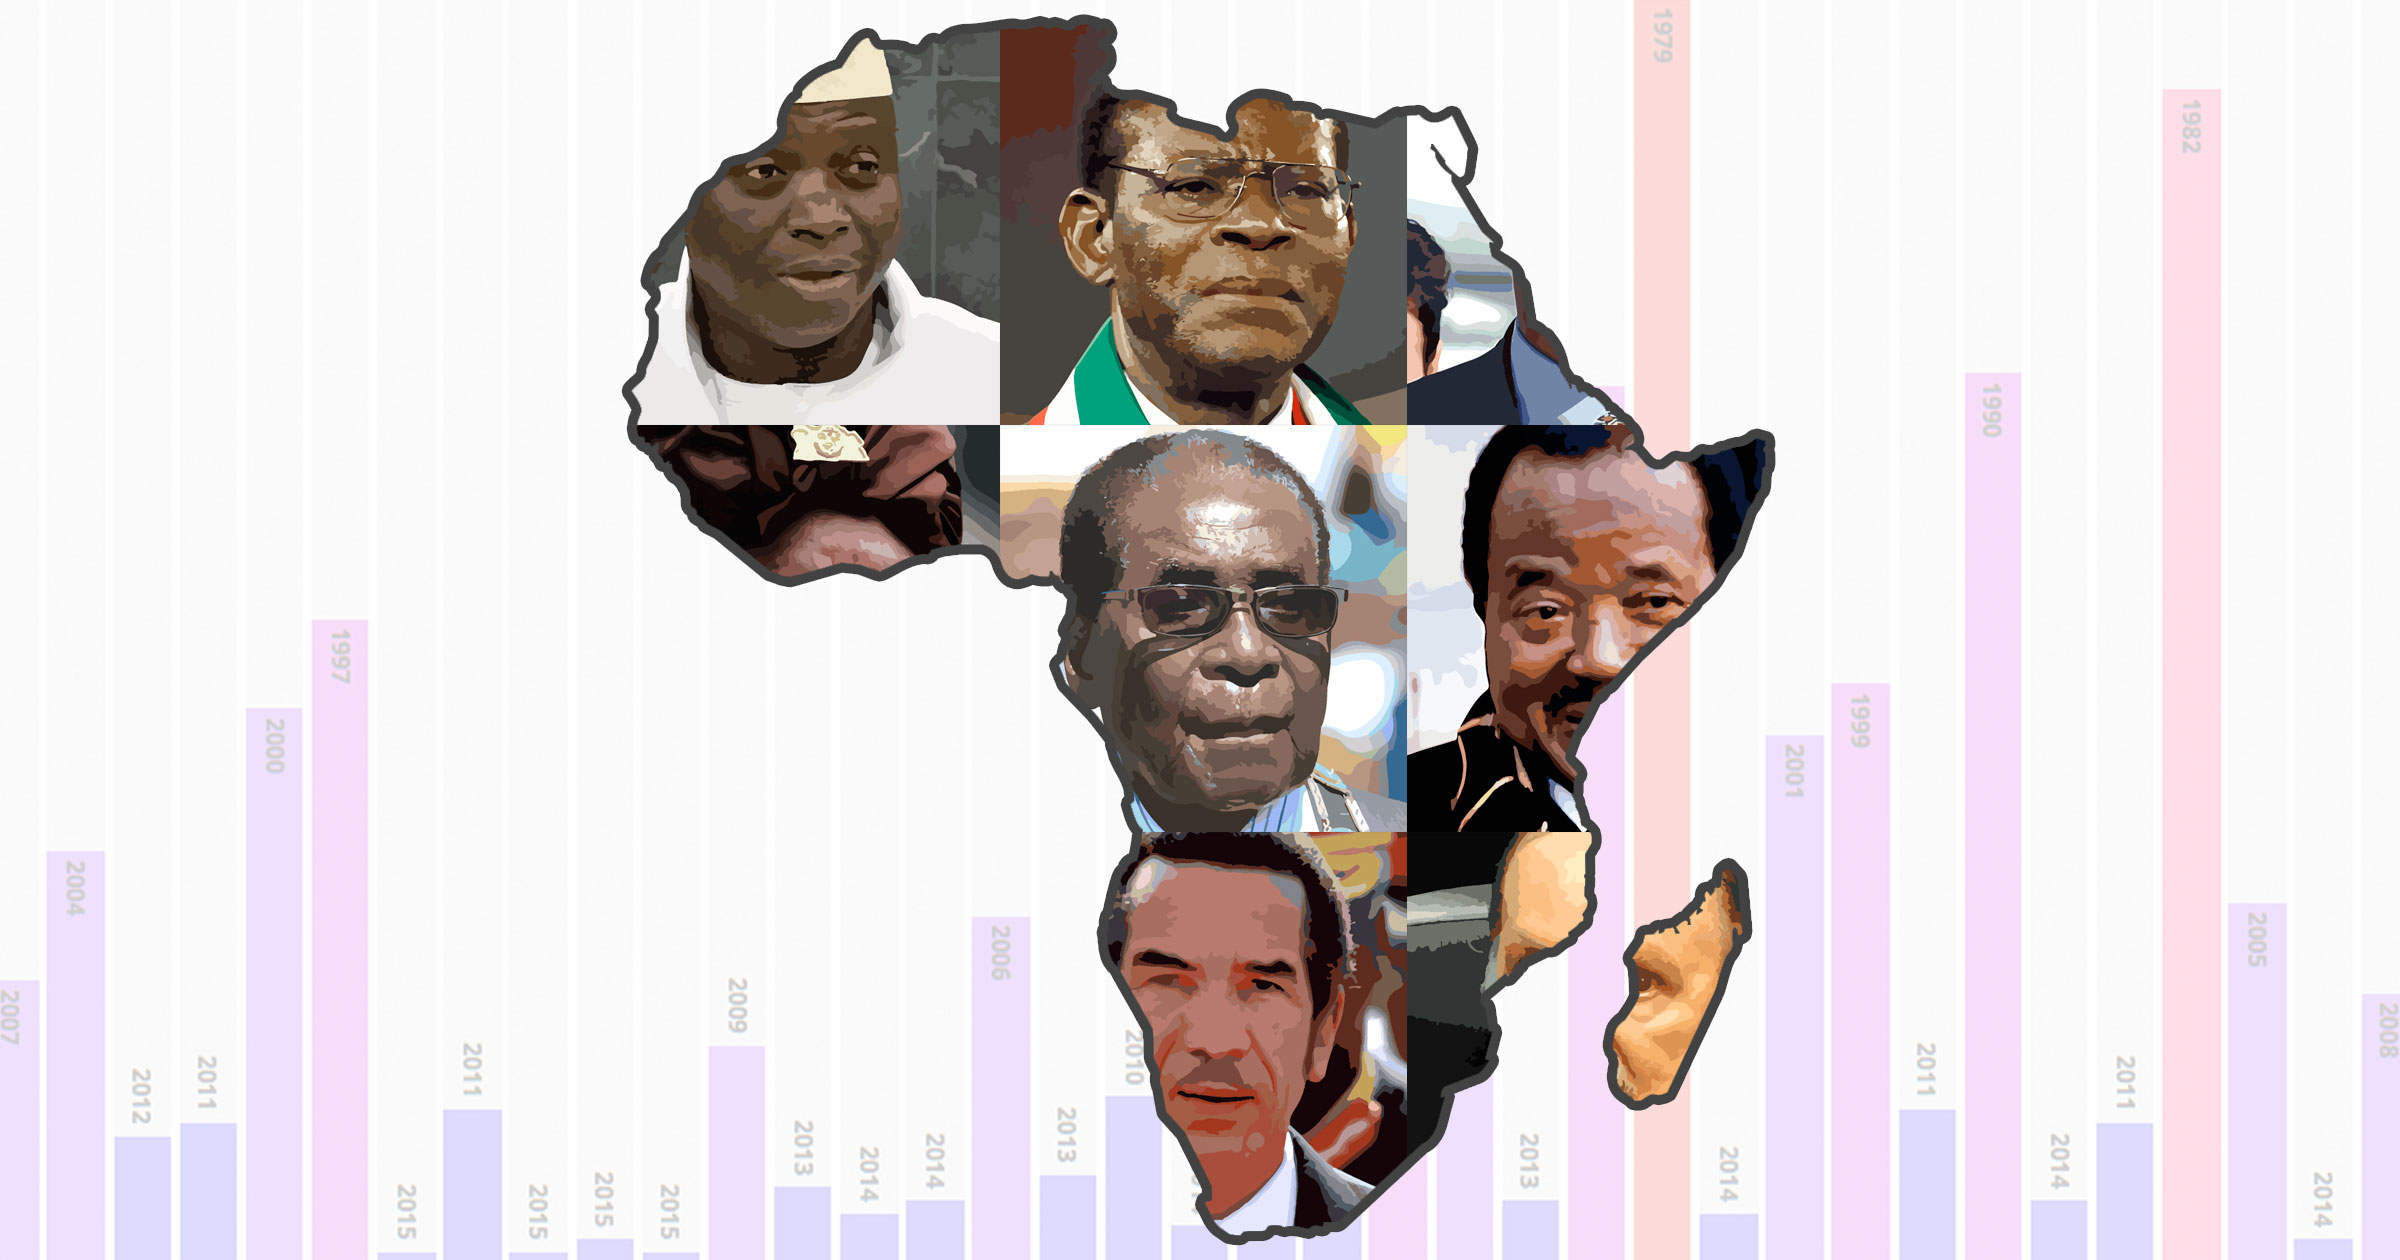 Consider, that image of africa and their leaders remarkable, this